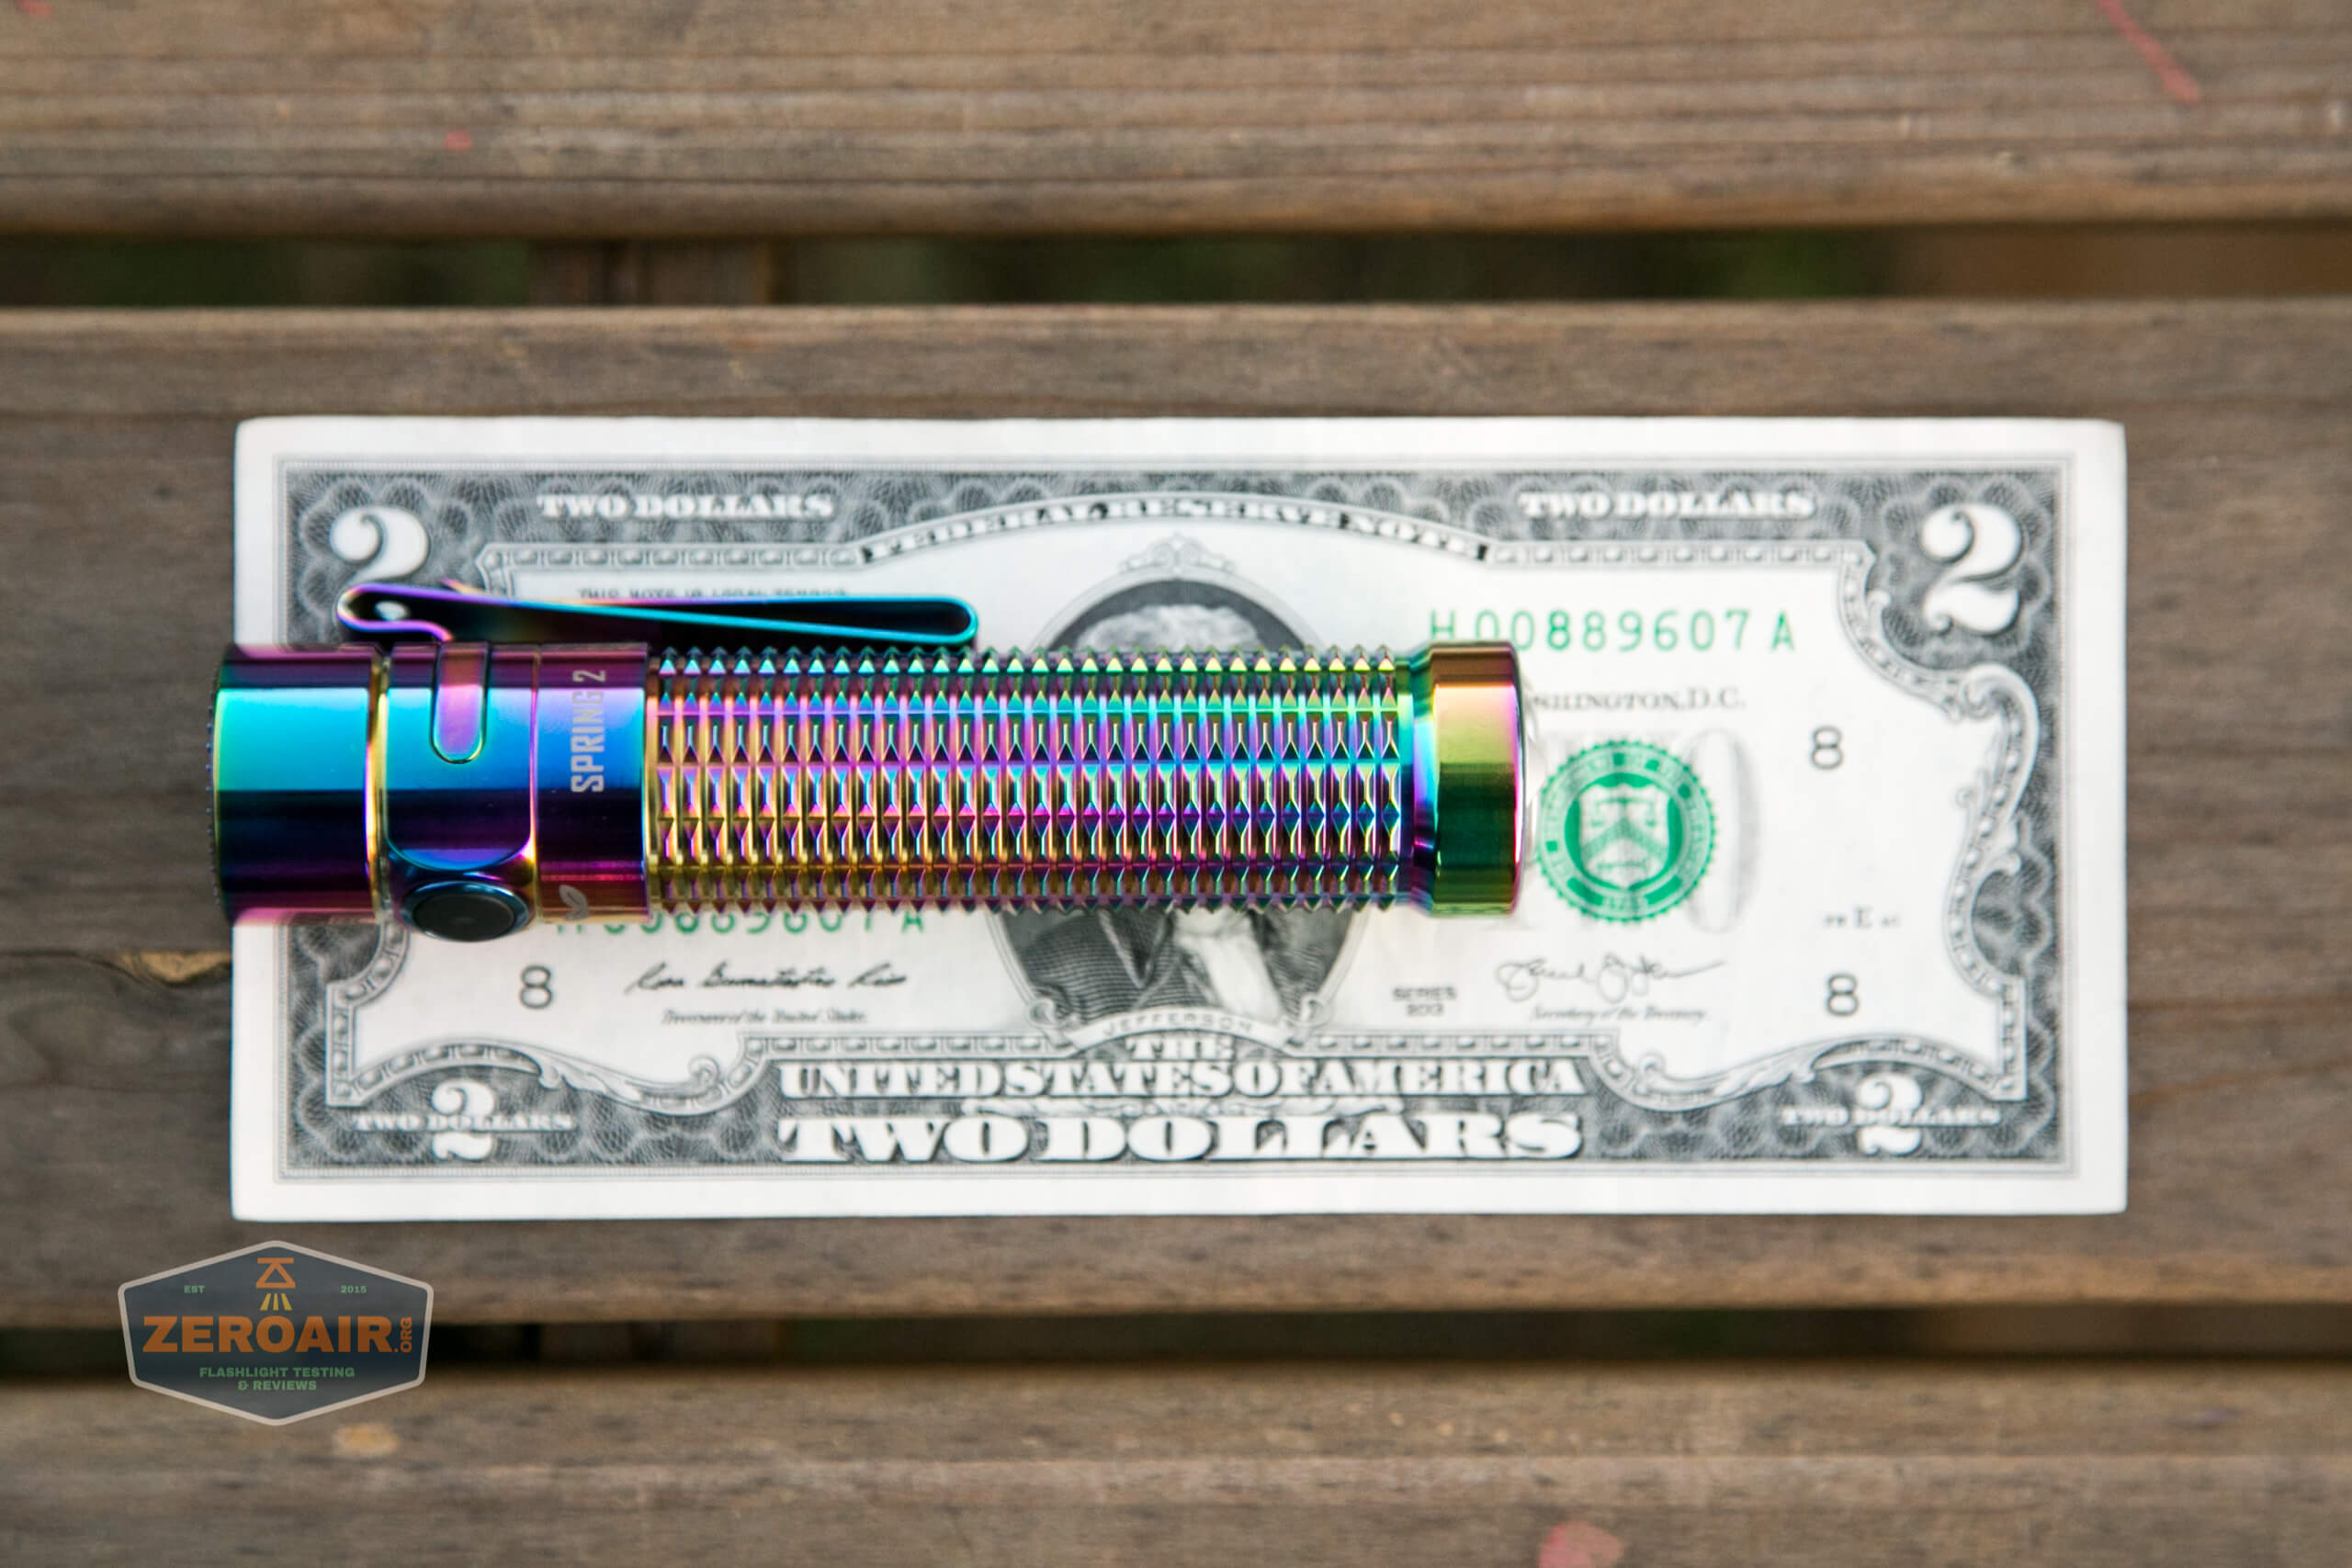 olight warrior mini rainbow spring 2 led flashlight on two dollar bill